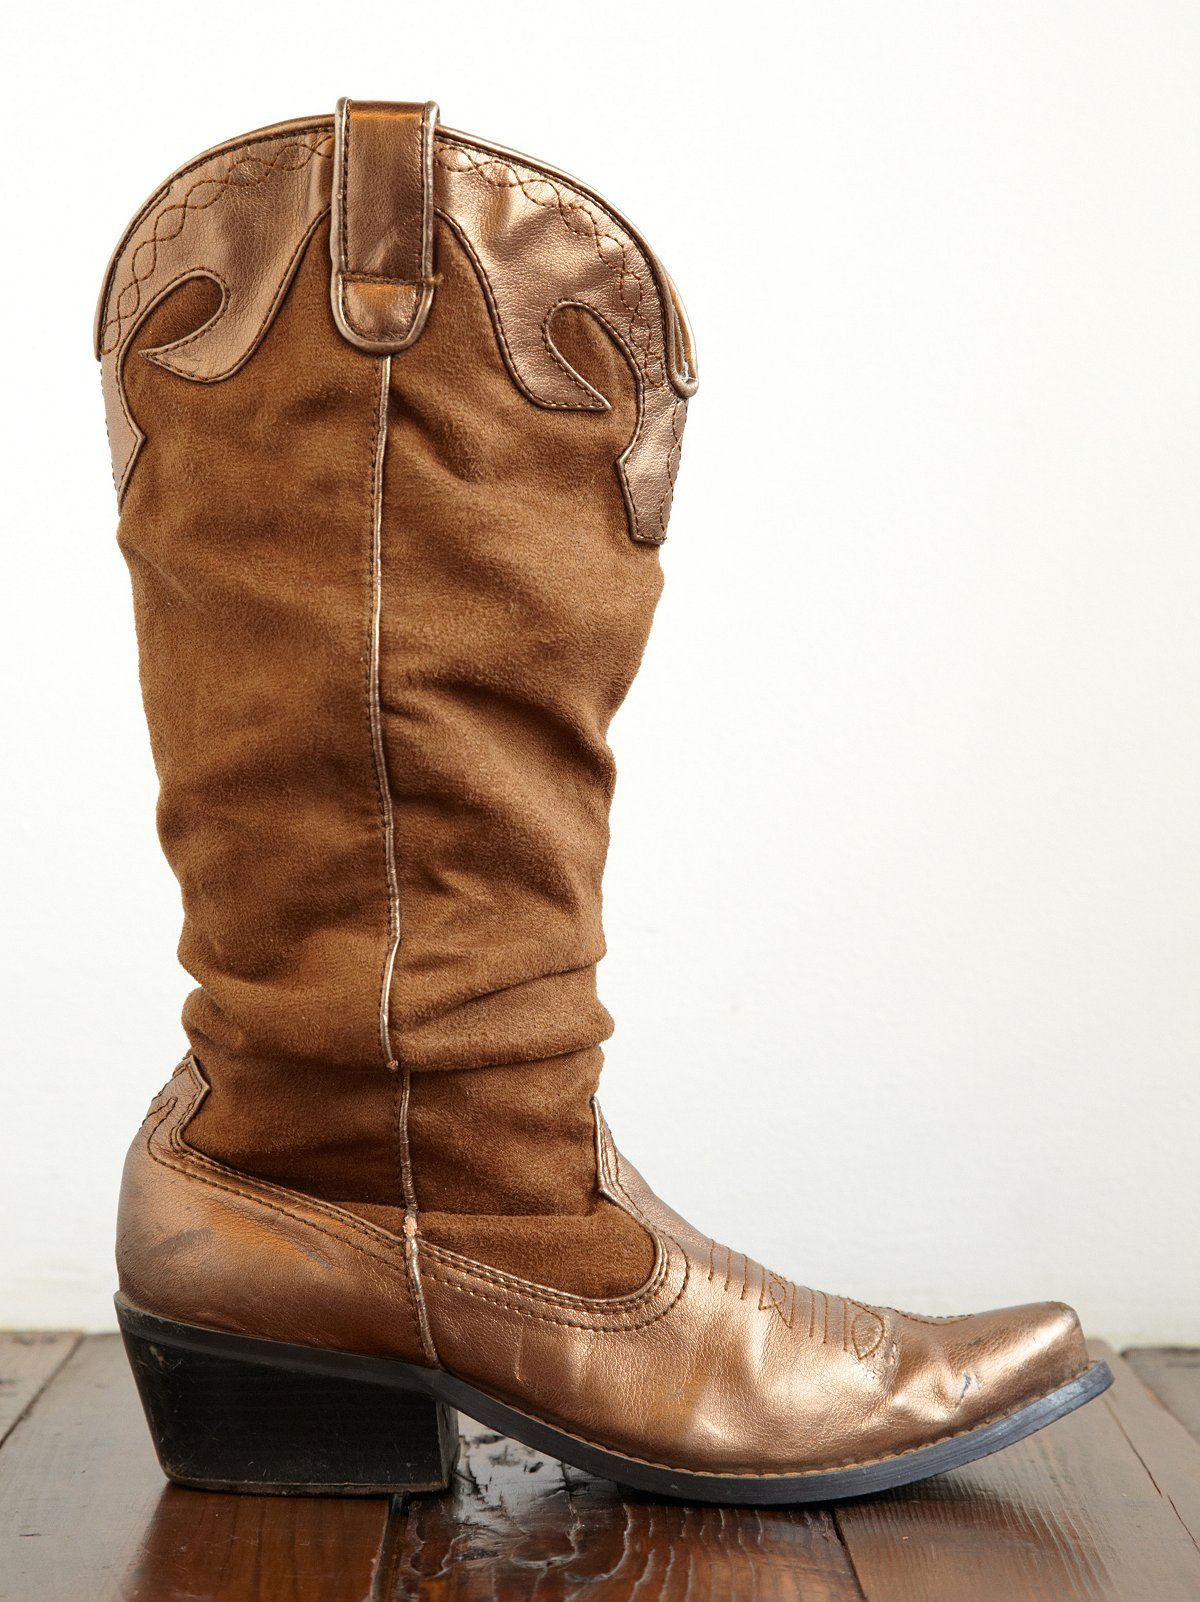 Vintage Scrunched Cowboy Boots